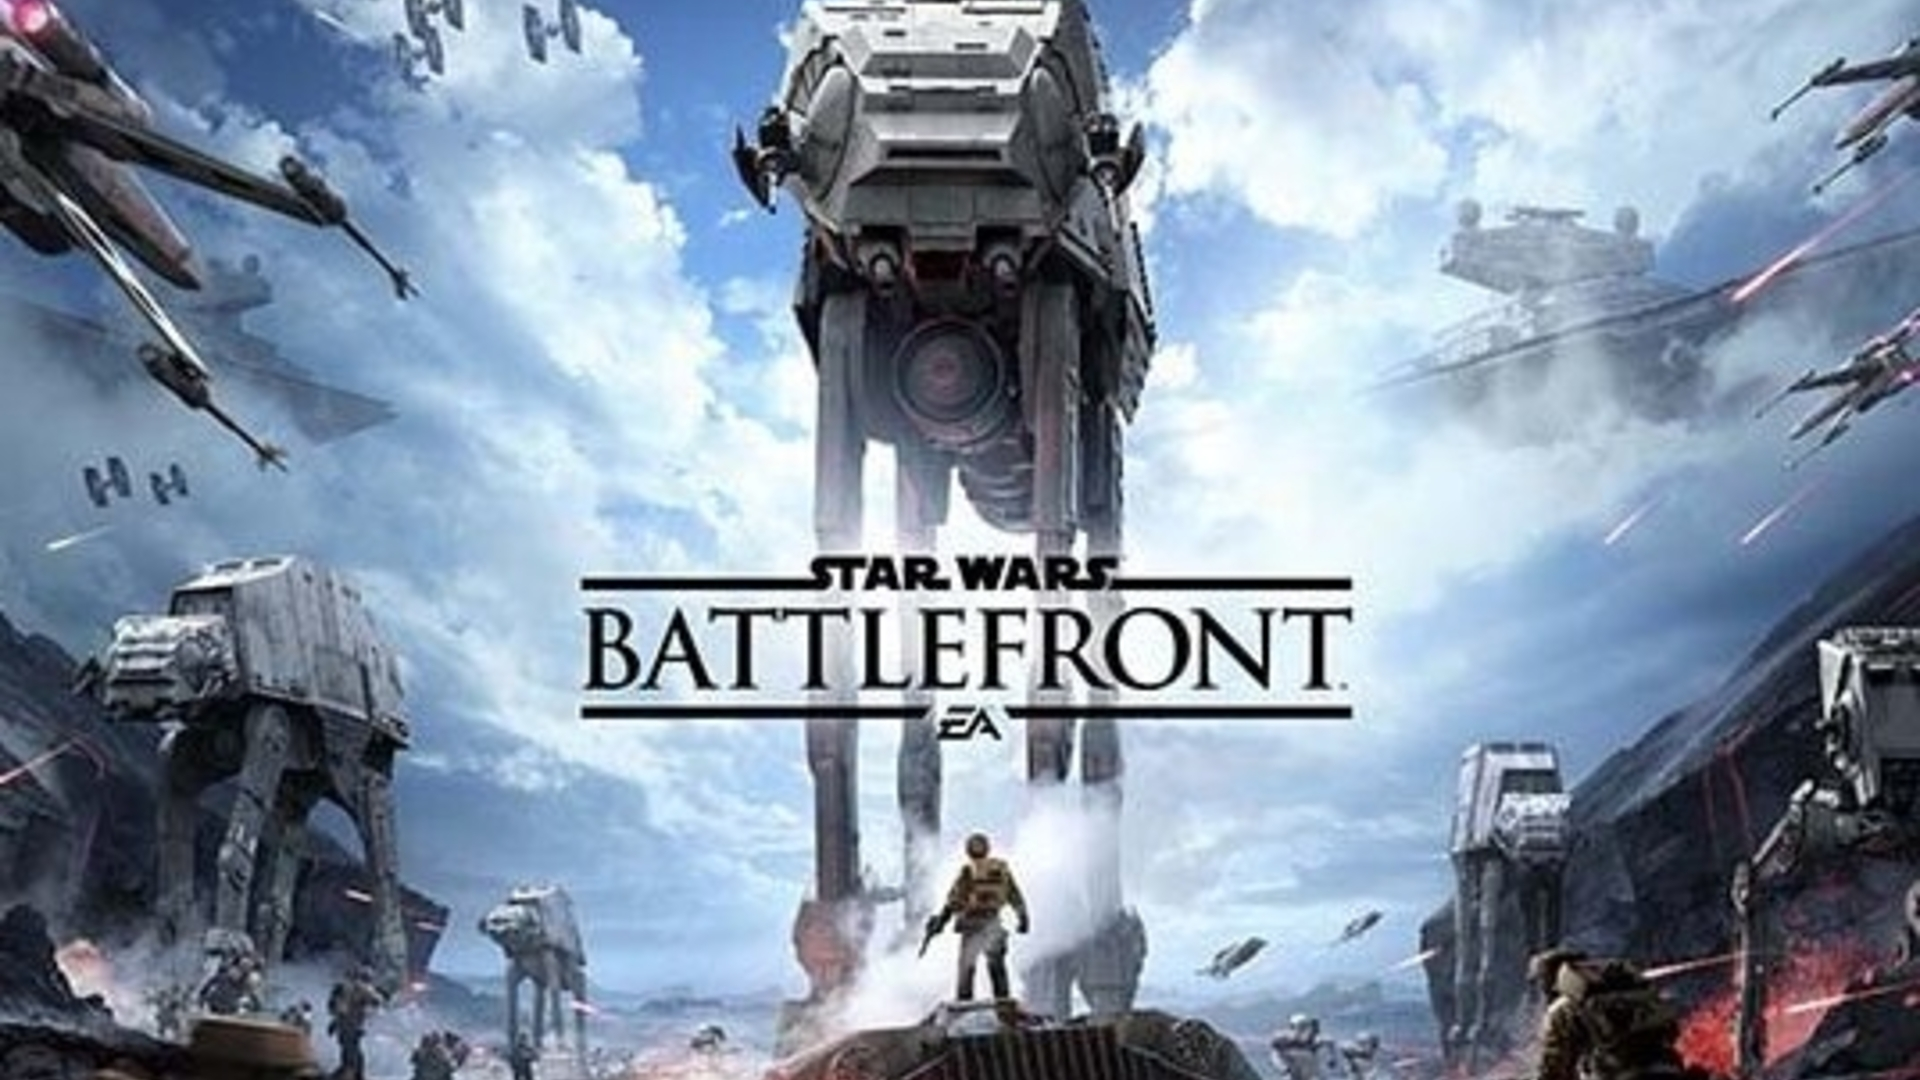 Anuncio de TV de Star Wars: Battlefront